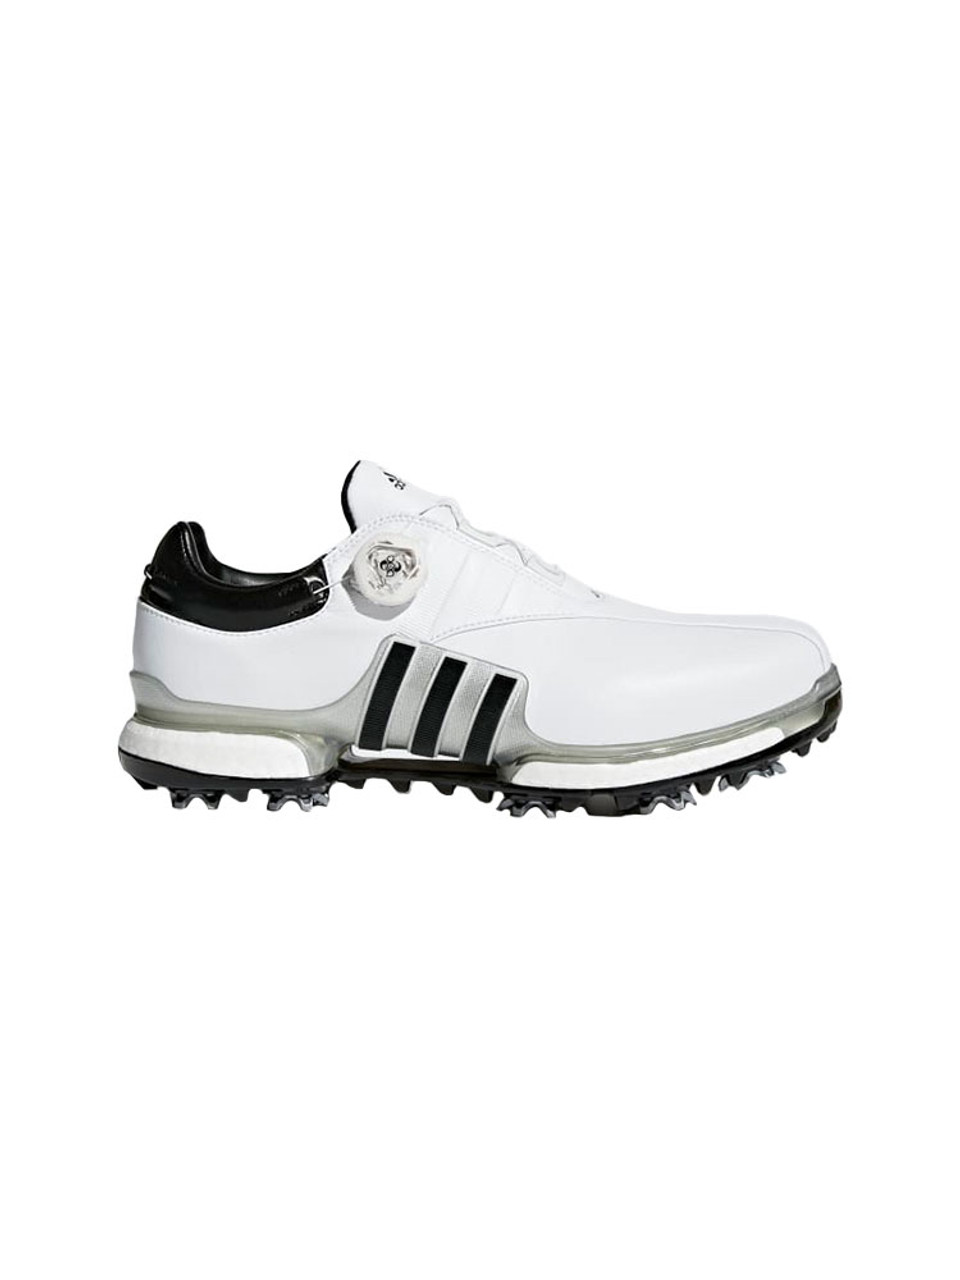 dfb514205648 Adidas Tour360 Boost EQT BOA Golf Shoes - White Silver Black - Mens ...